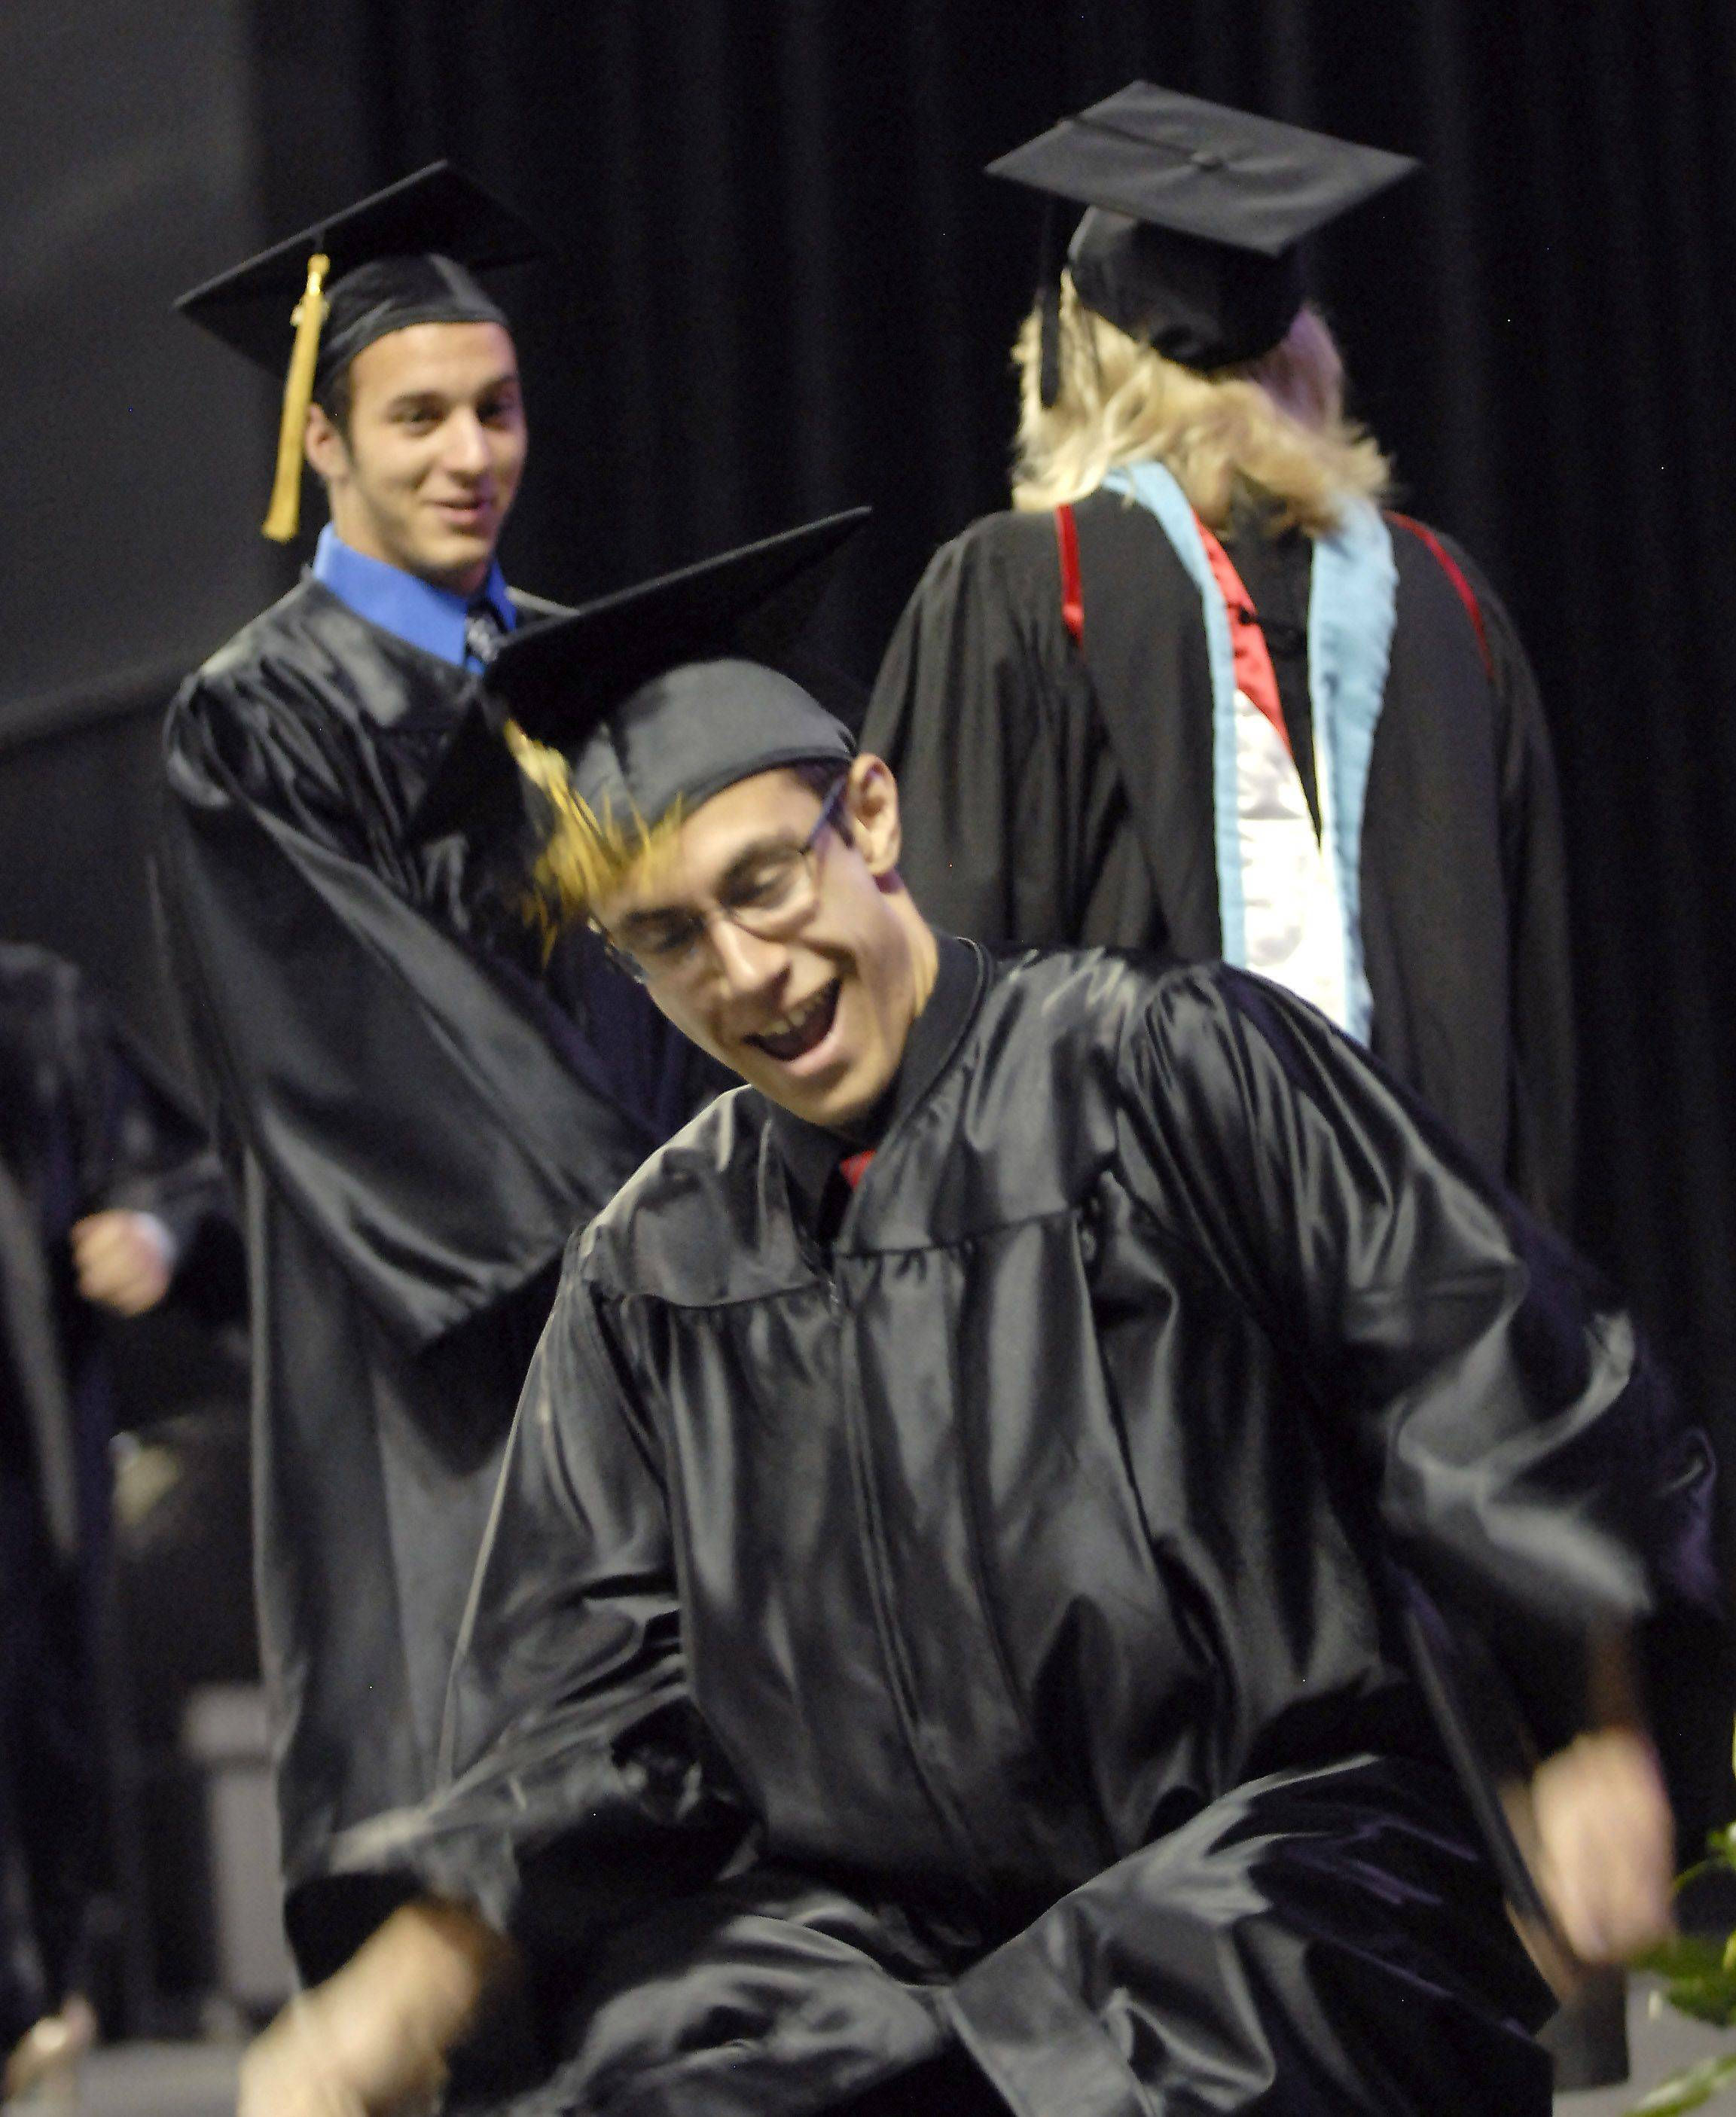 Josh Bennici gets down and dances a bit after receiving his diploma at the Streamwood High School graduation on May 28th at the Sears Centre.